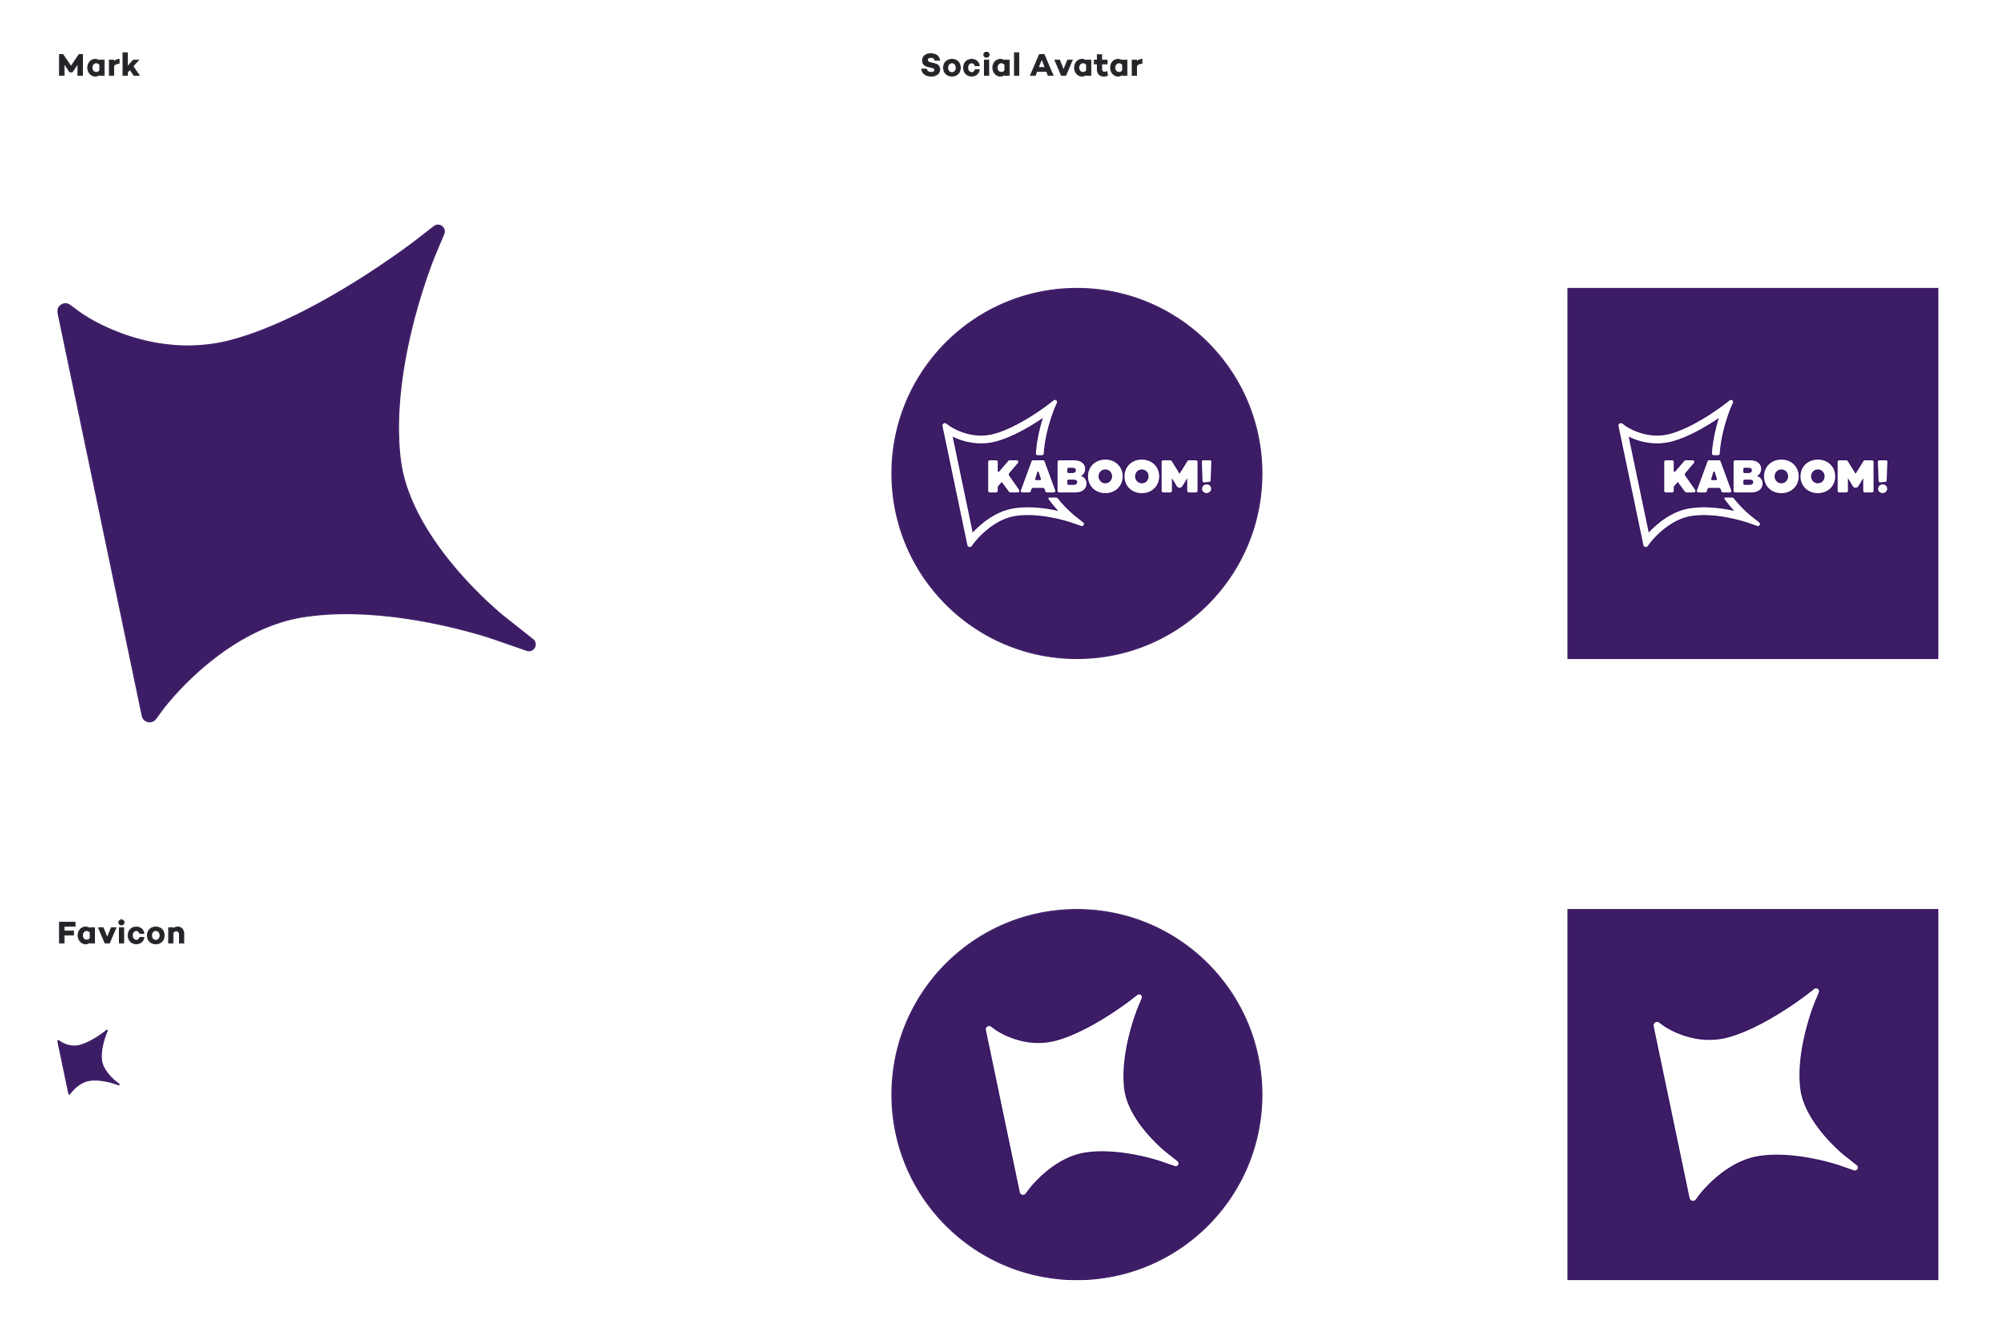 New Logo and Identity for KABOOM!